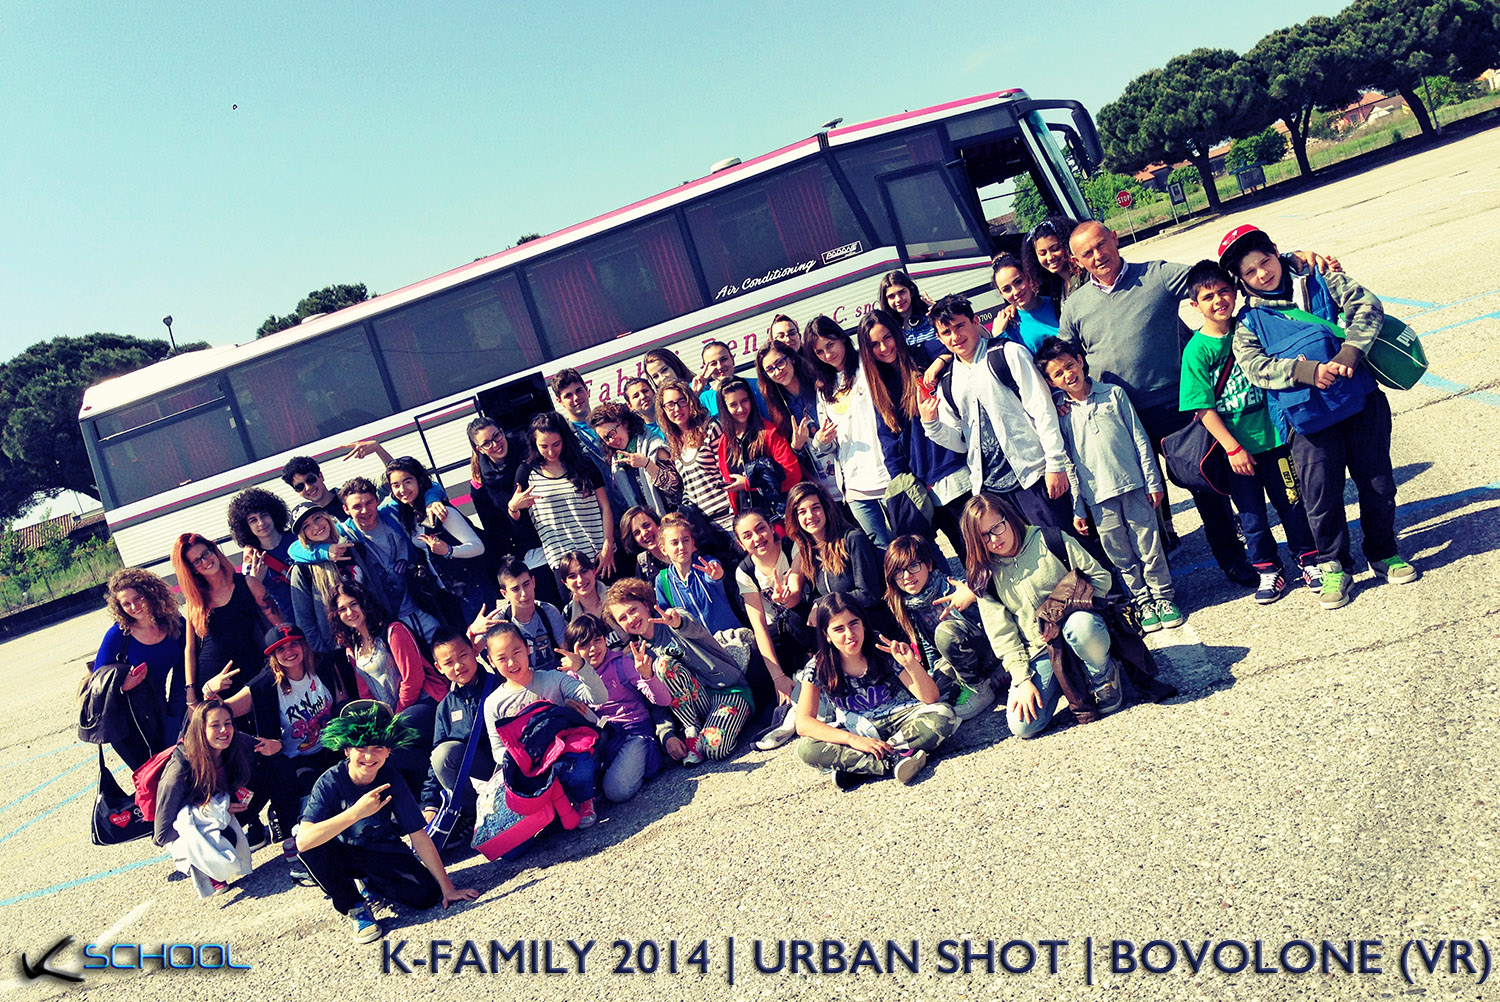 K BUS | K FAMILY | URBAN SHOT 2014